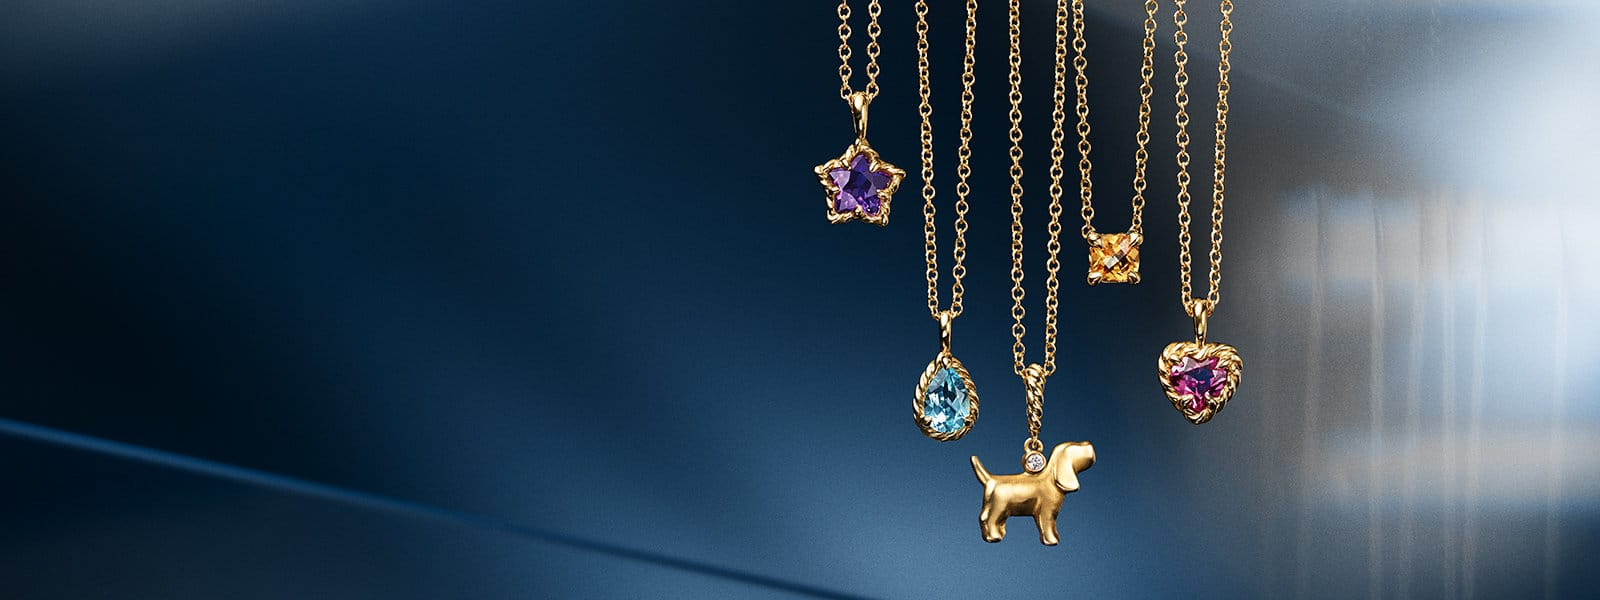 A color photograph shows six David Yurman kids' pendant necklaces hanging in front of a reflective blue background with angular, multi-colored reflections of light and gold jewelry. The jewelry is crafted from 18K yellow with or without a star-shaped amethyst, teardrop-shaped blue topaz, a dog charm with a white diamond, a cushion-cut citrine, a heart-shaped rhodalite garnet and a Cable circular pendant.